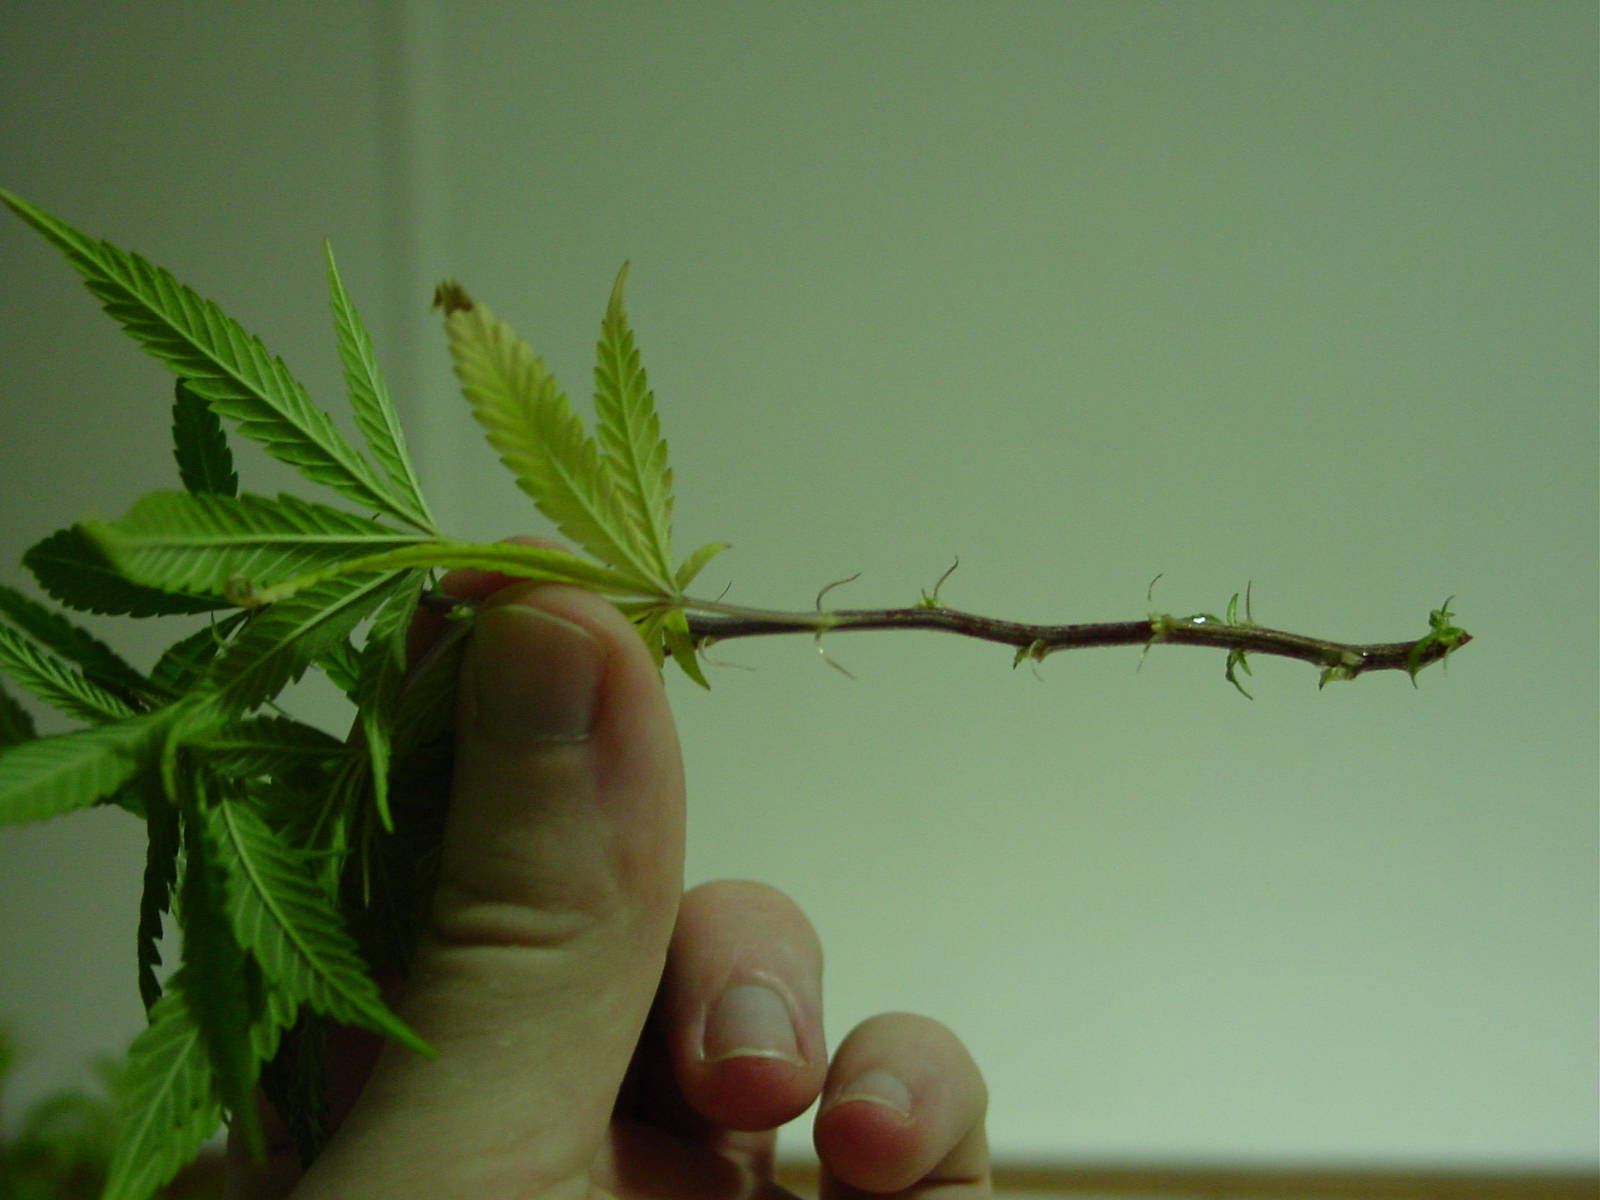 how to put cannabis grower on a resume